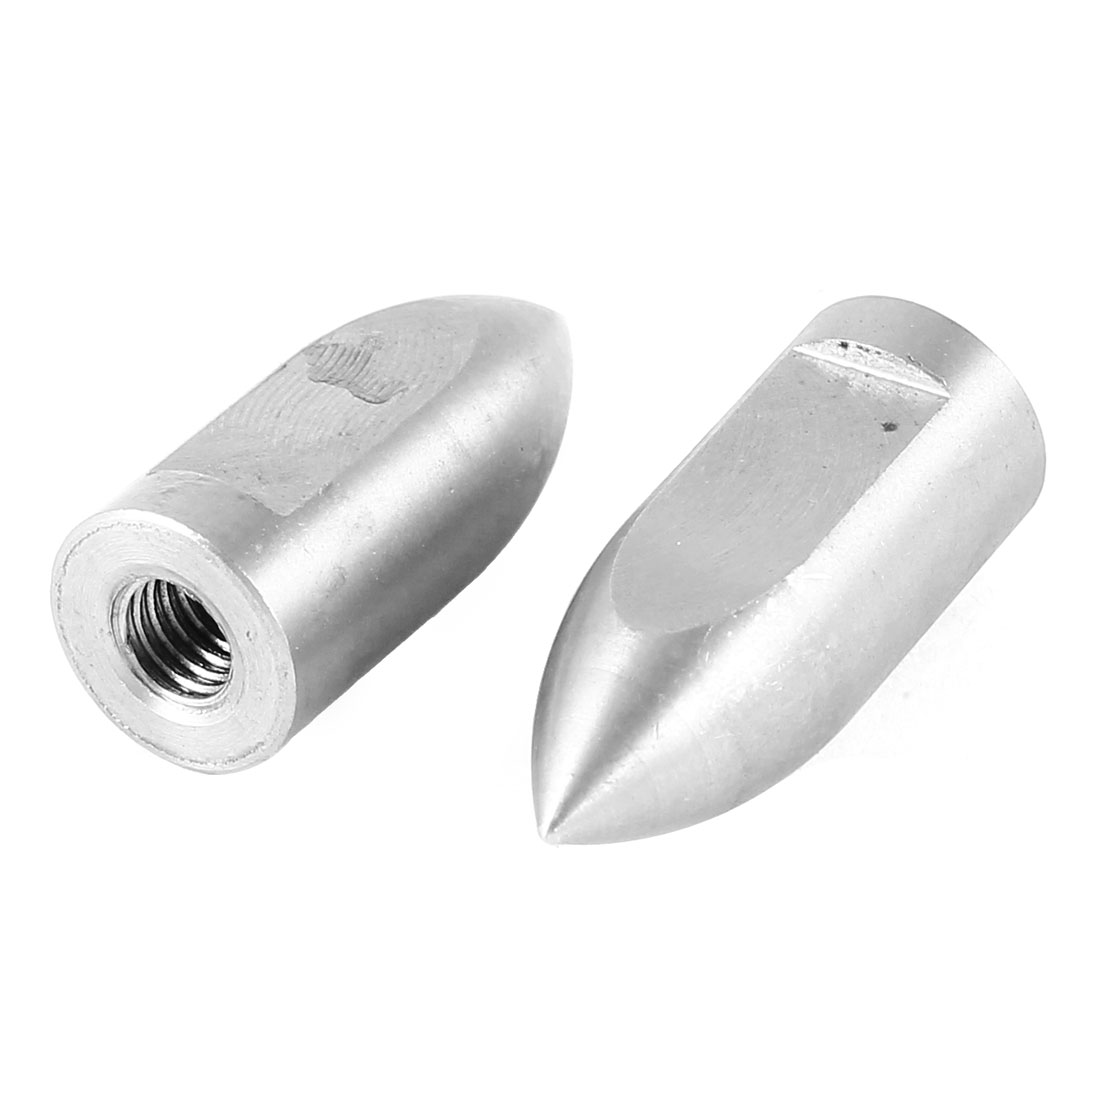 2pcs 10mm x 24mm Stainless Steel Flexshaft Prop Nut for 5mm Shaft Brushless Electric Boats